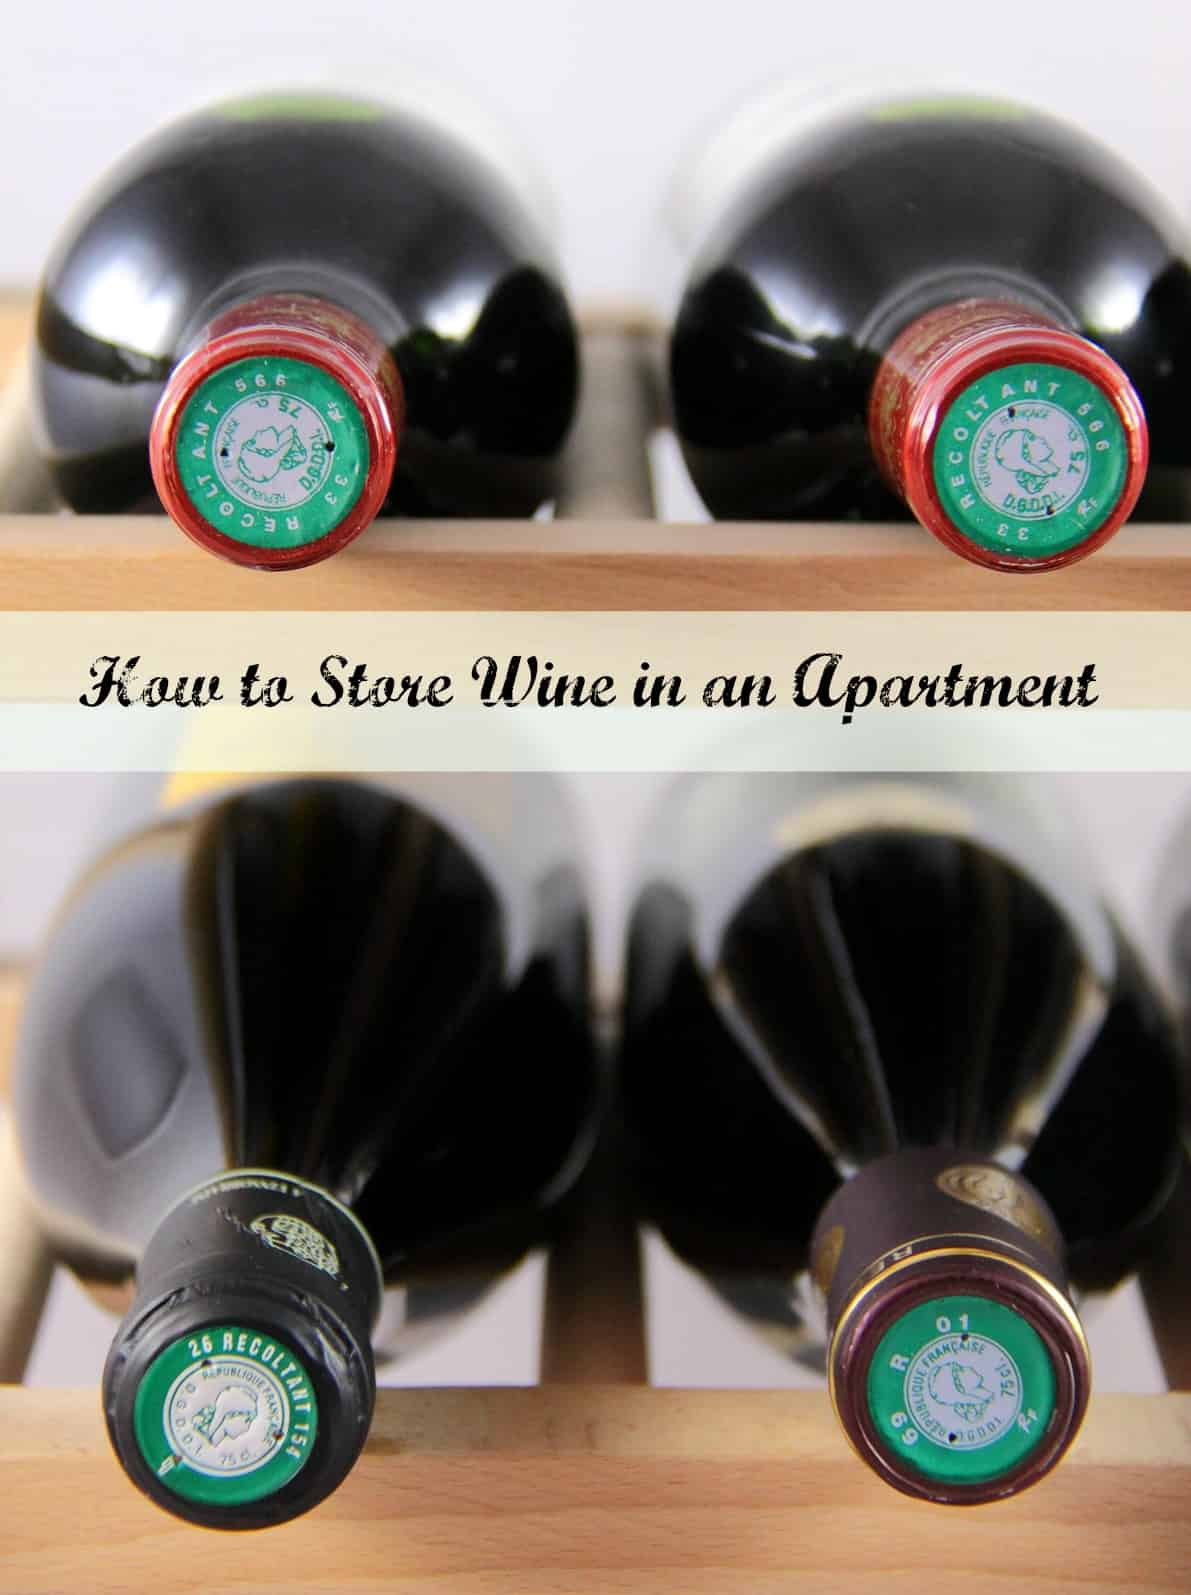 How_to_Store_Wine_in_an_Apartment